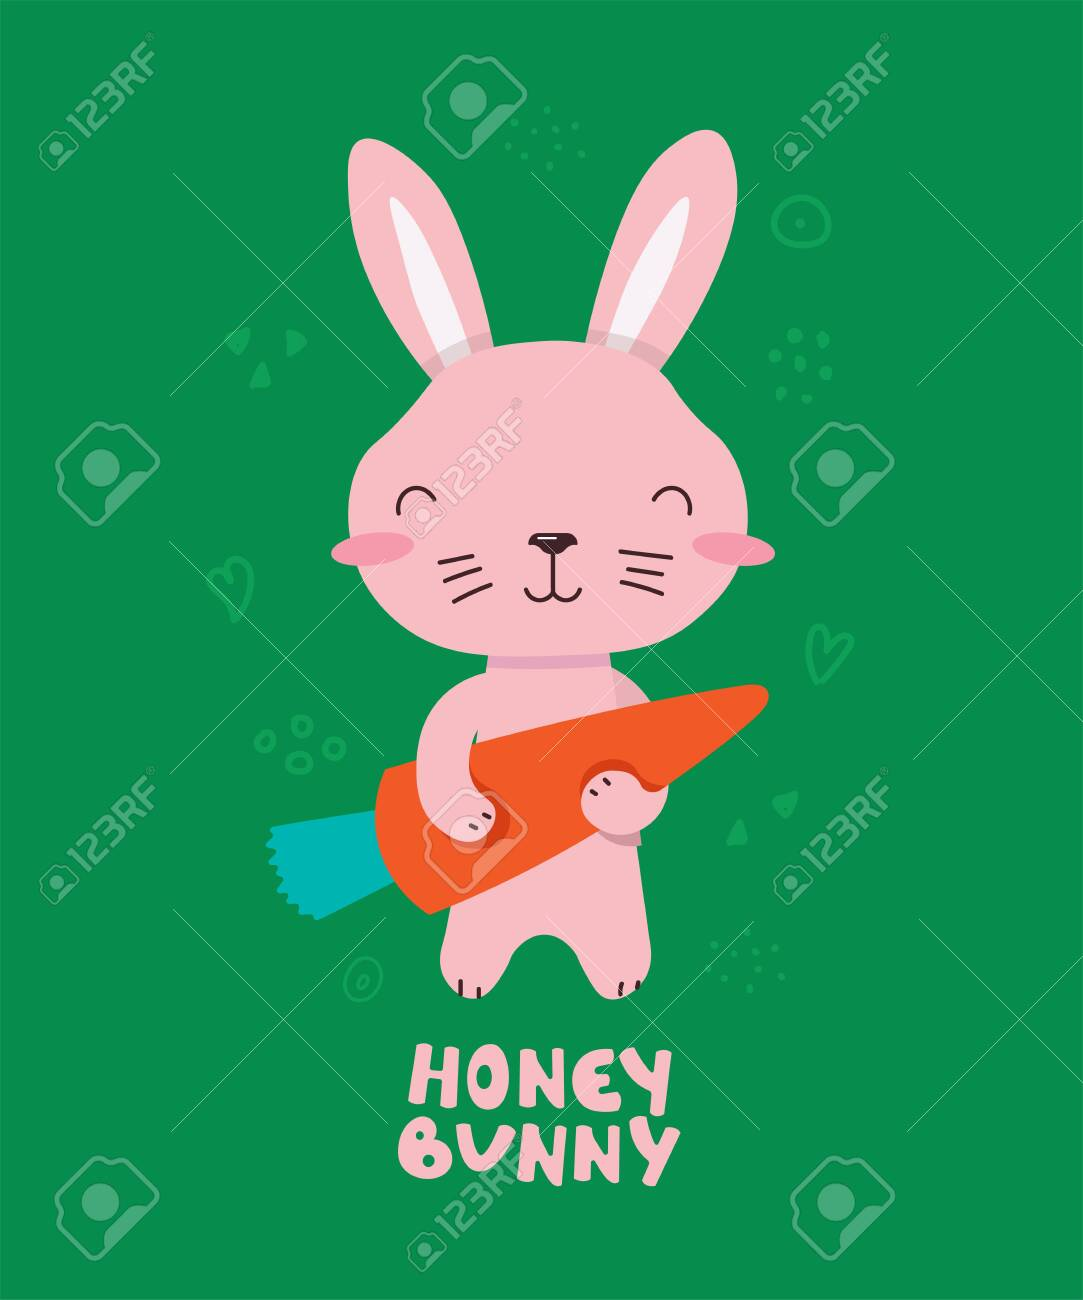 Honey bunny cartoon